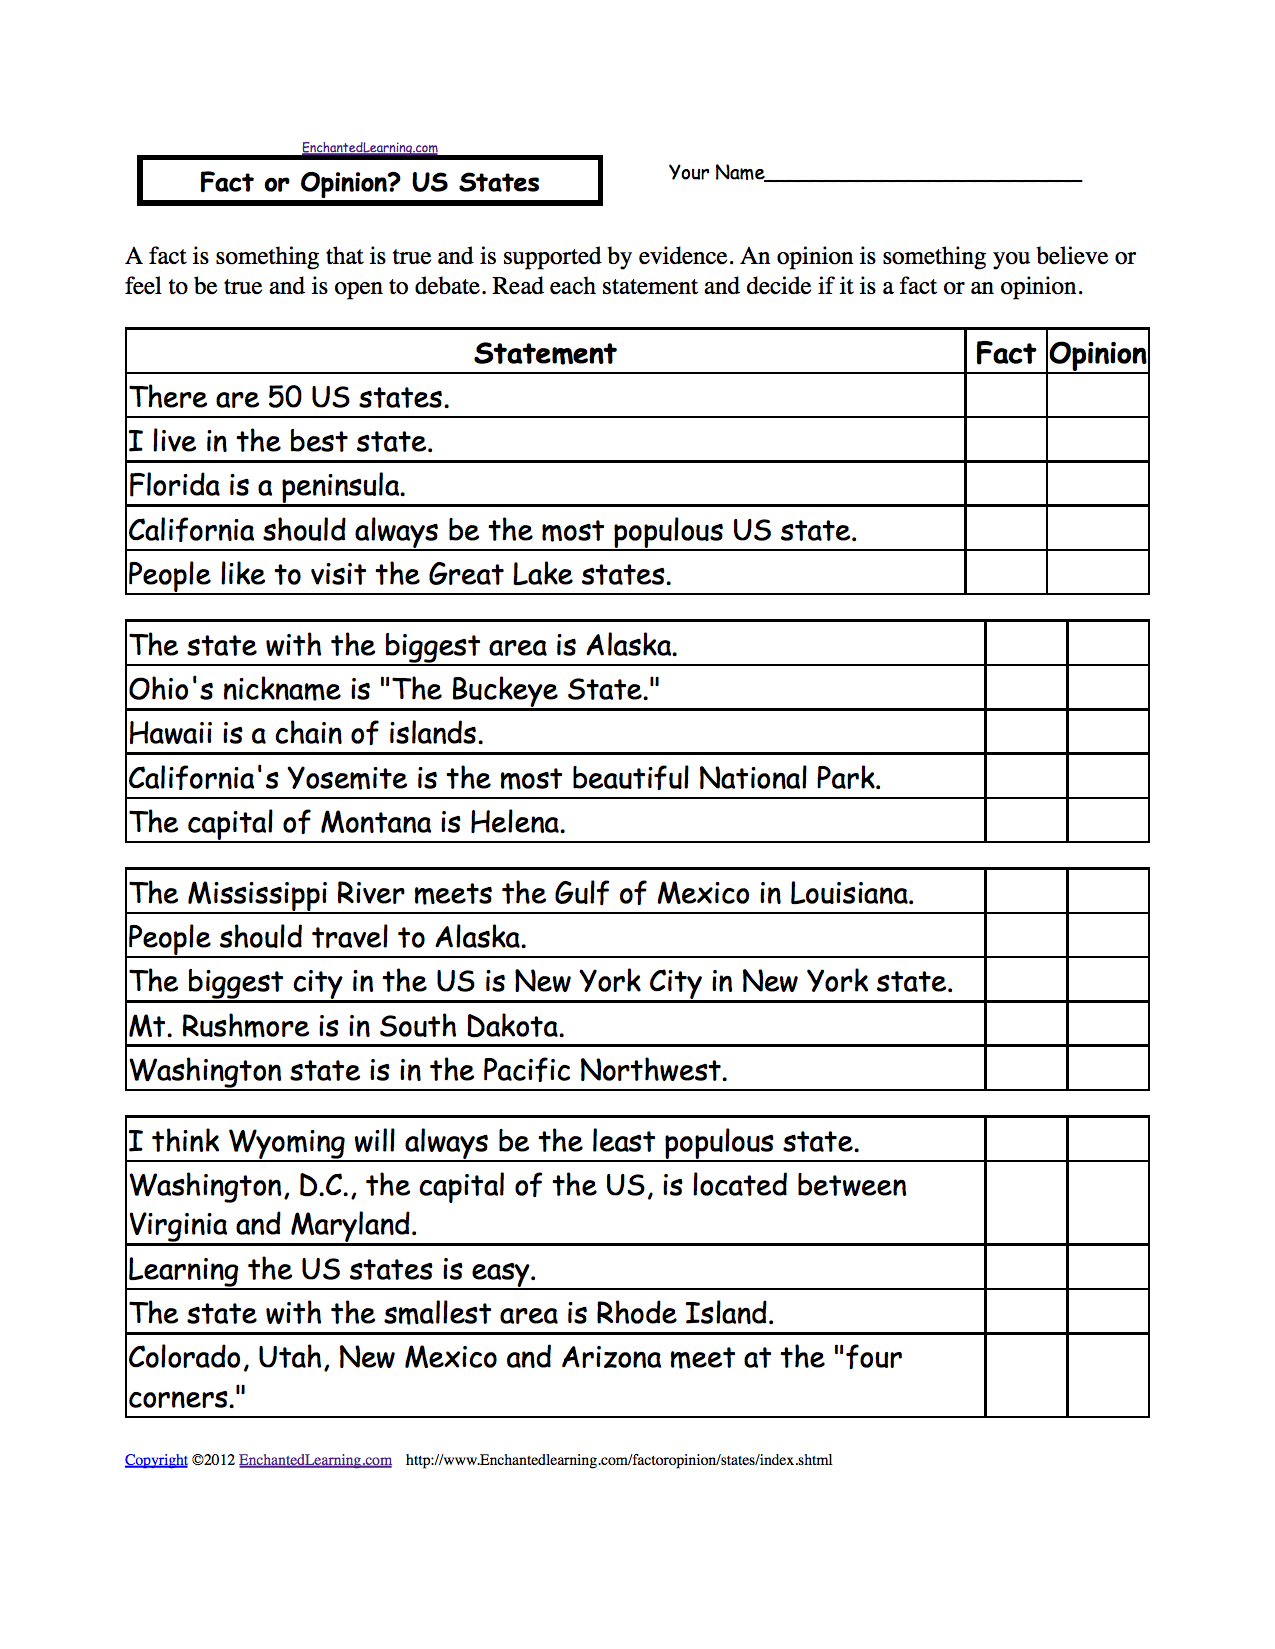 worksheet Louisiana Purchase Worksheet us geography enchantedlearning com fact or opinion states